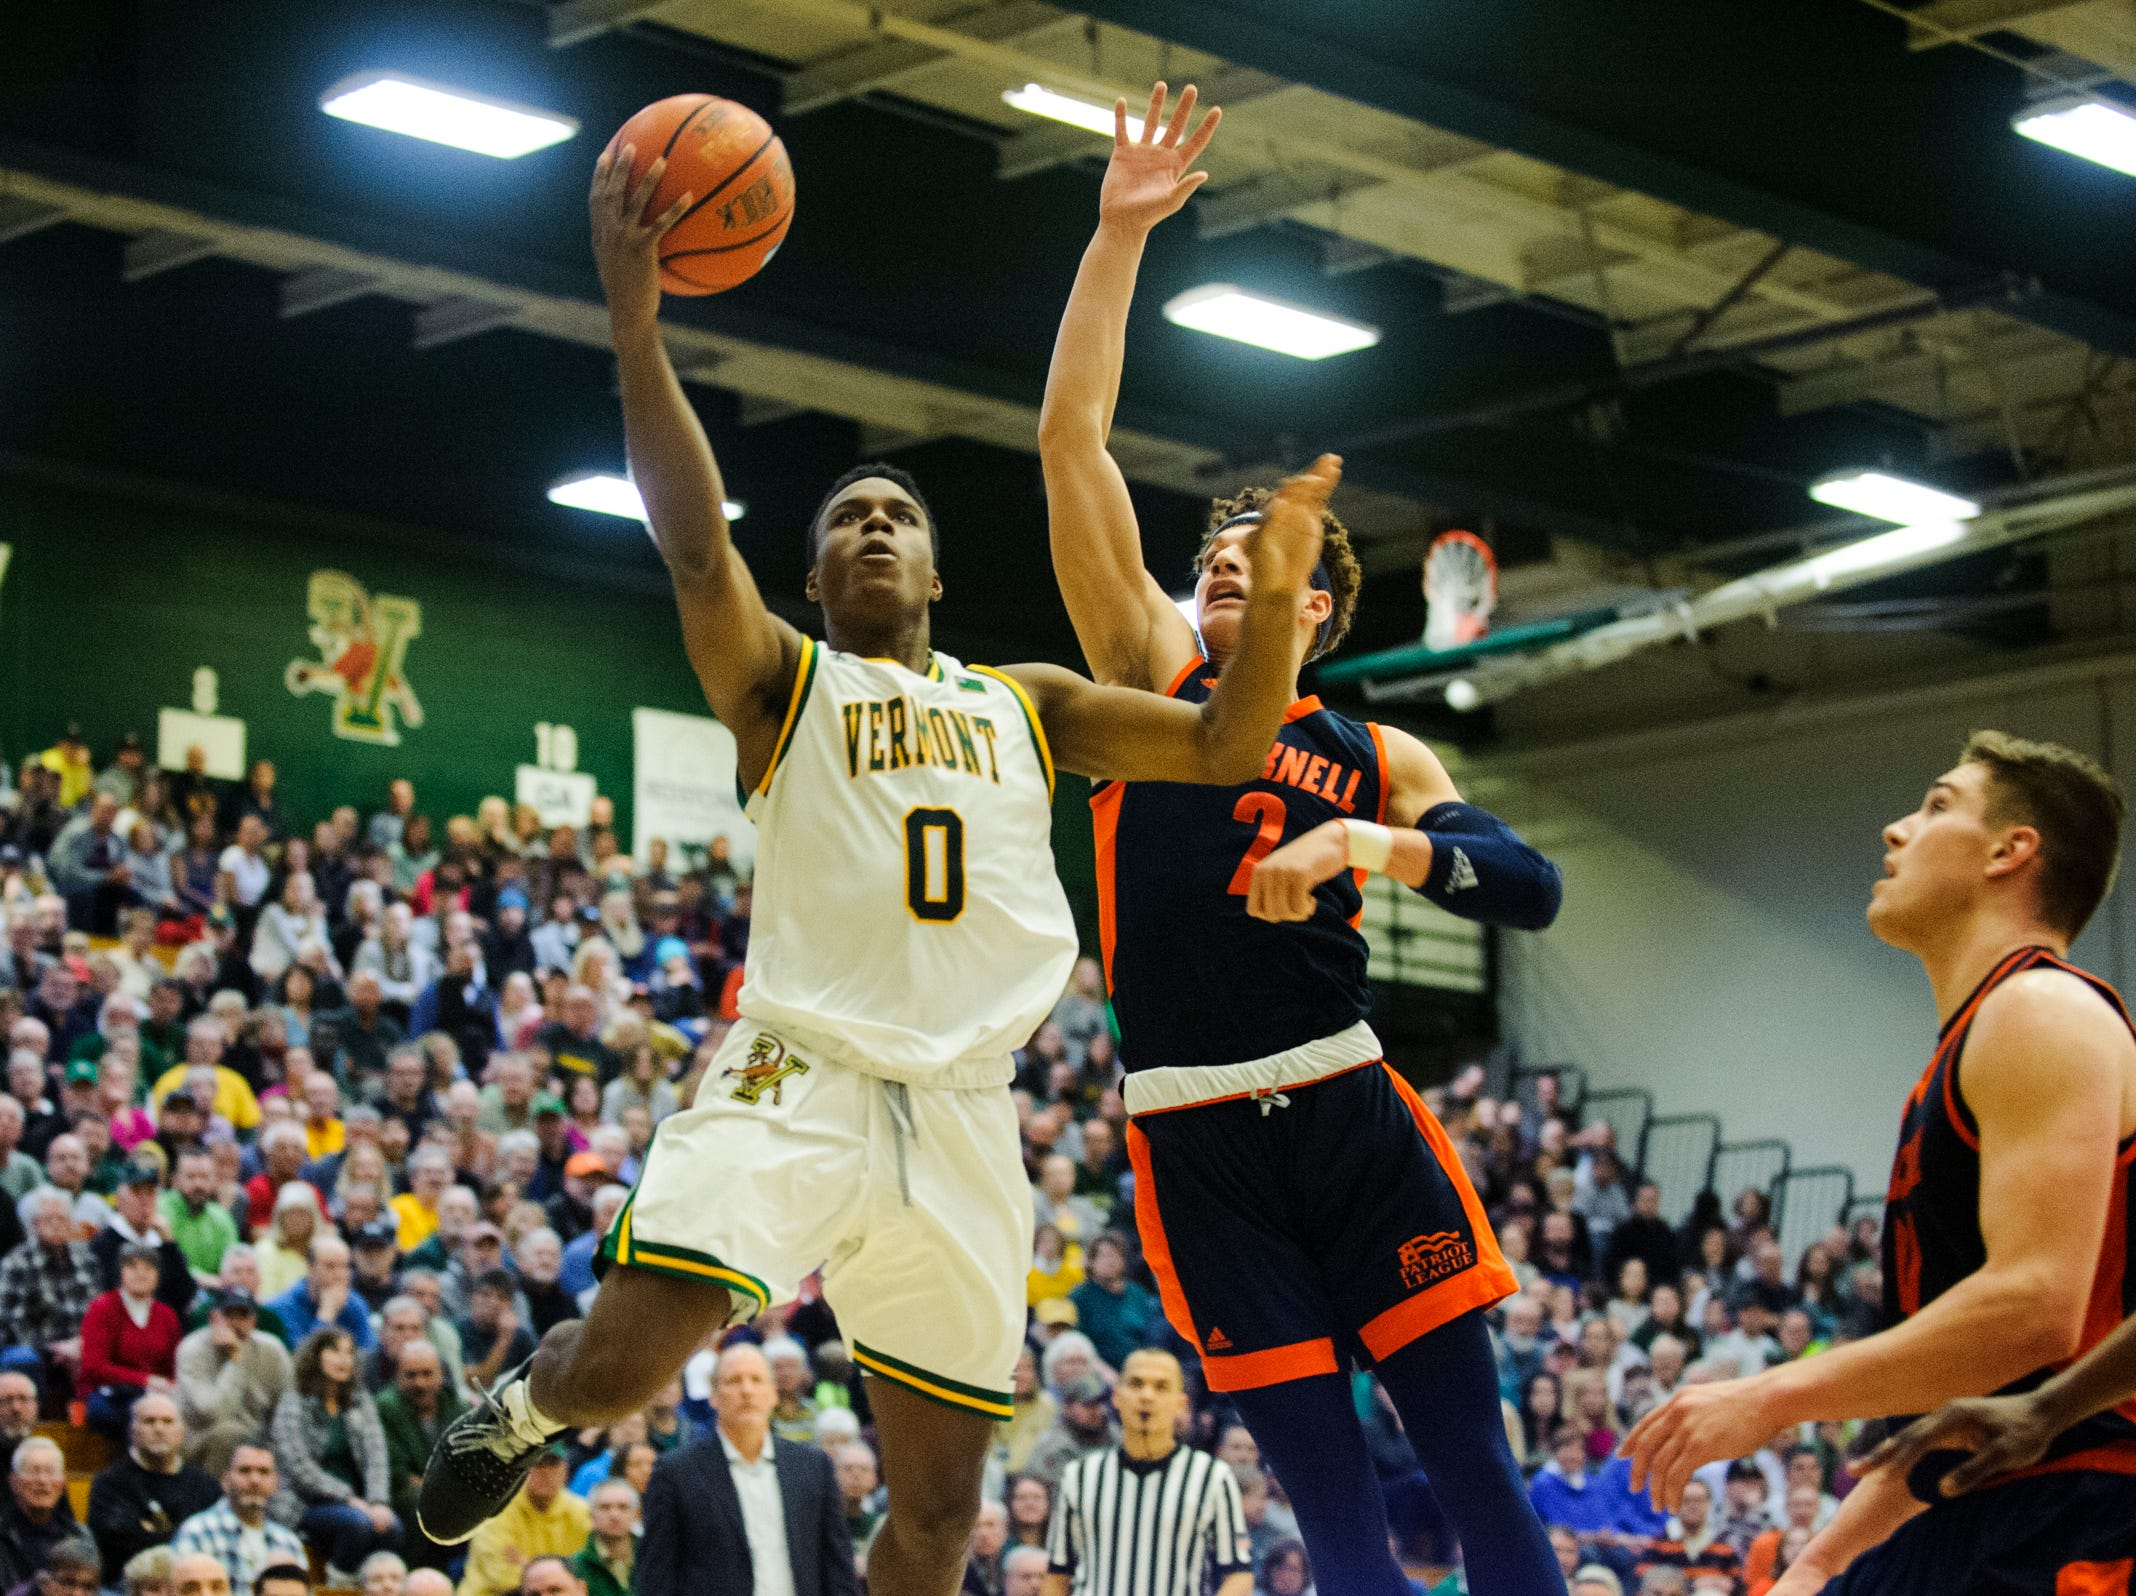 Vermont guard Stef Smith (0) leaps past Bucknell's Walter Ellis (2) for a lay up during the men's basketball game between the Bucknell Bison and the Vermont Catamounts at Patrick Gym on Sunday afternoon November 25, 2018 in Burlington.